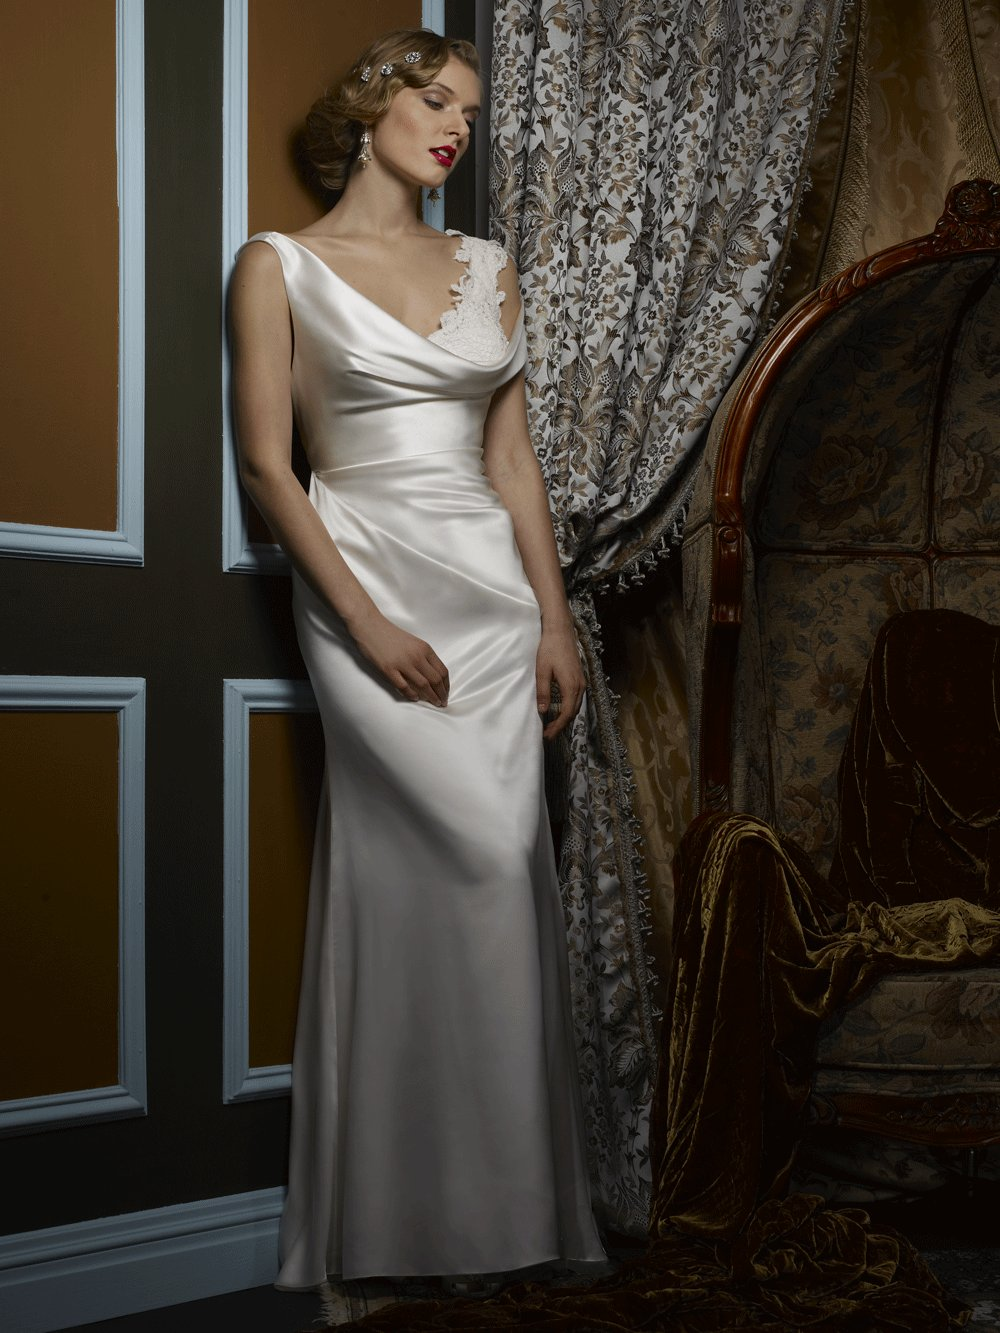 Wedding dress by Birnbaum and Bullock 2013 Bridal Elaina